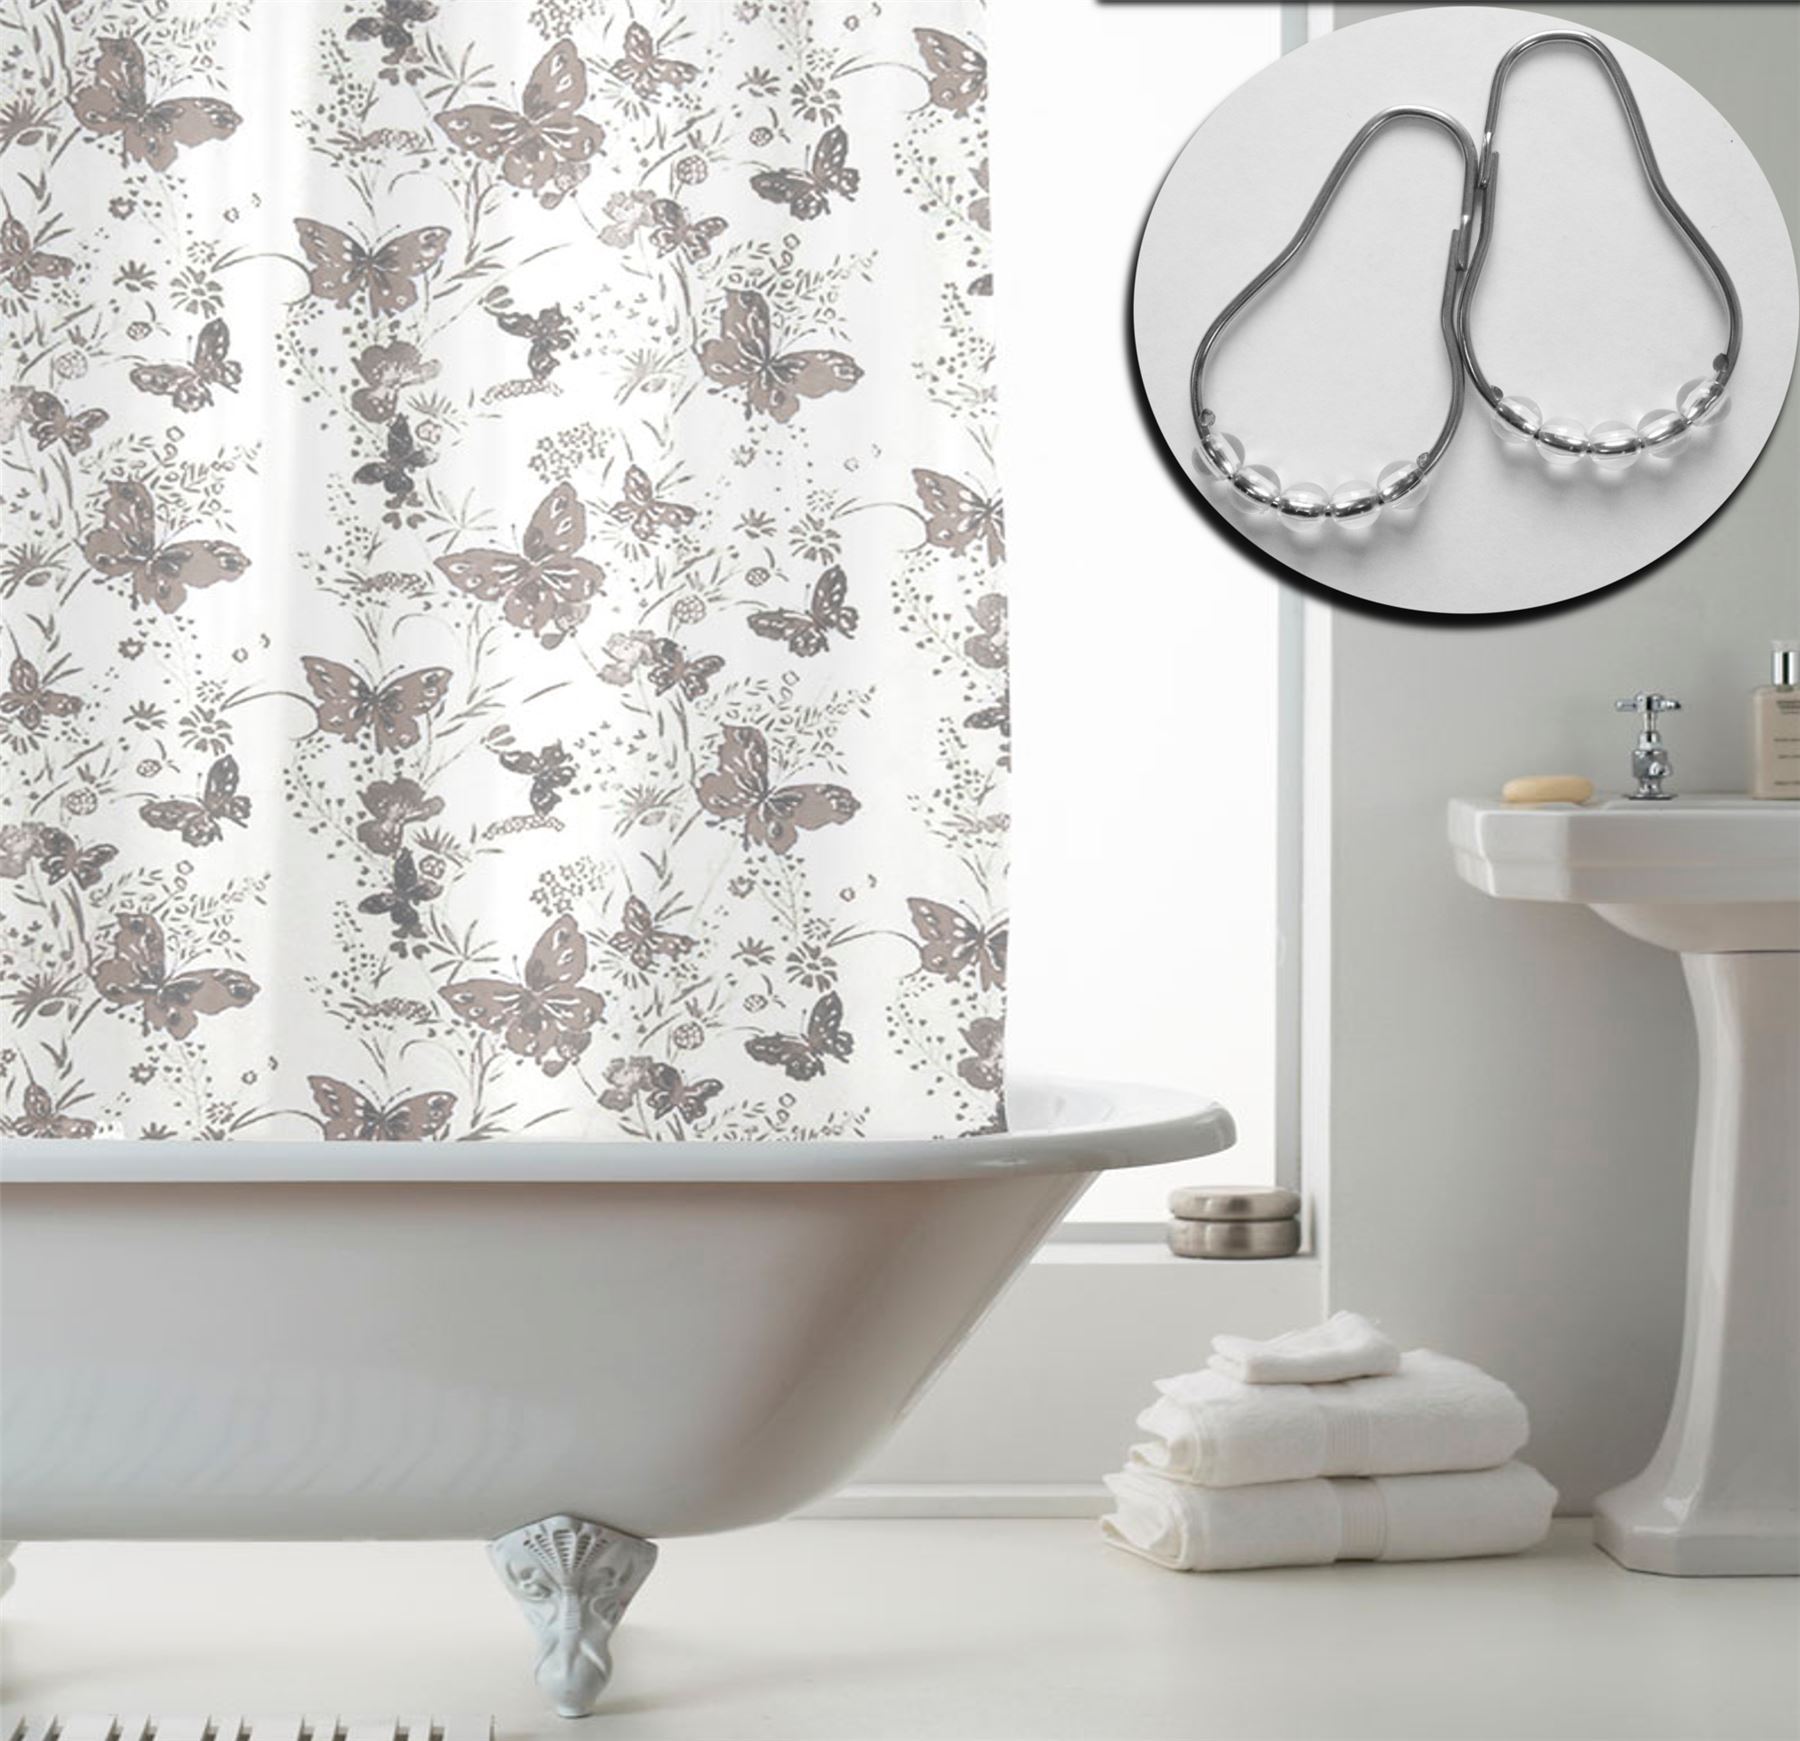 Shower Curtains With 12 Decorative Rings Modern Bathroom